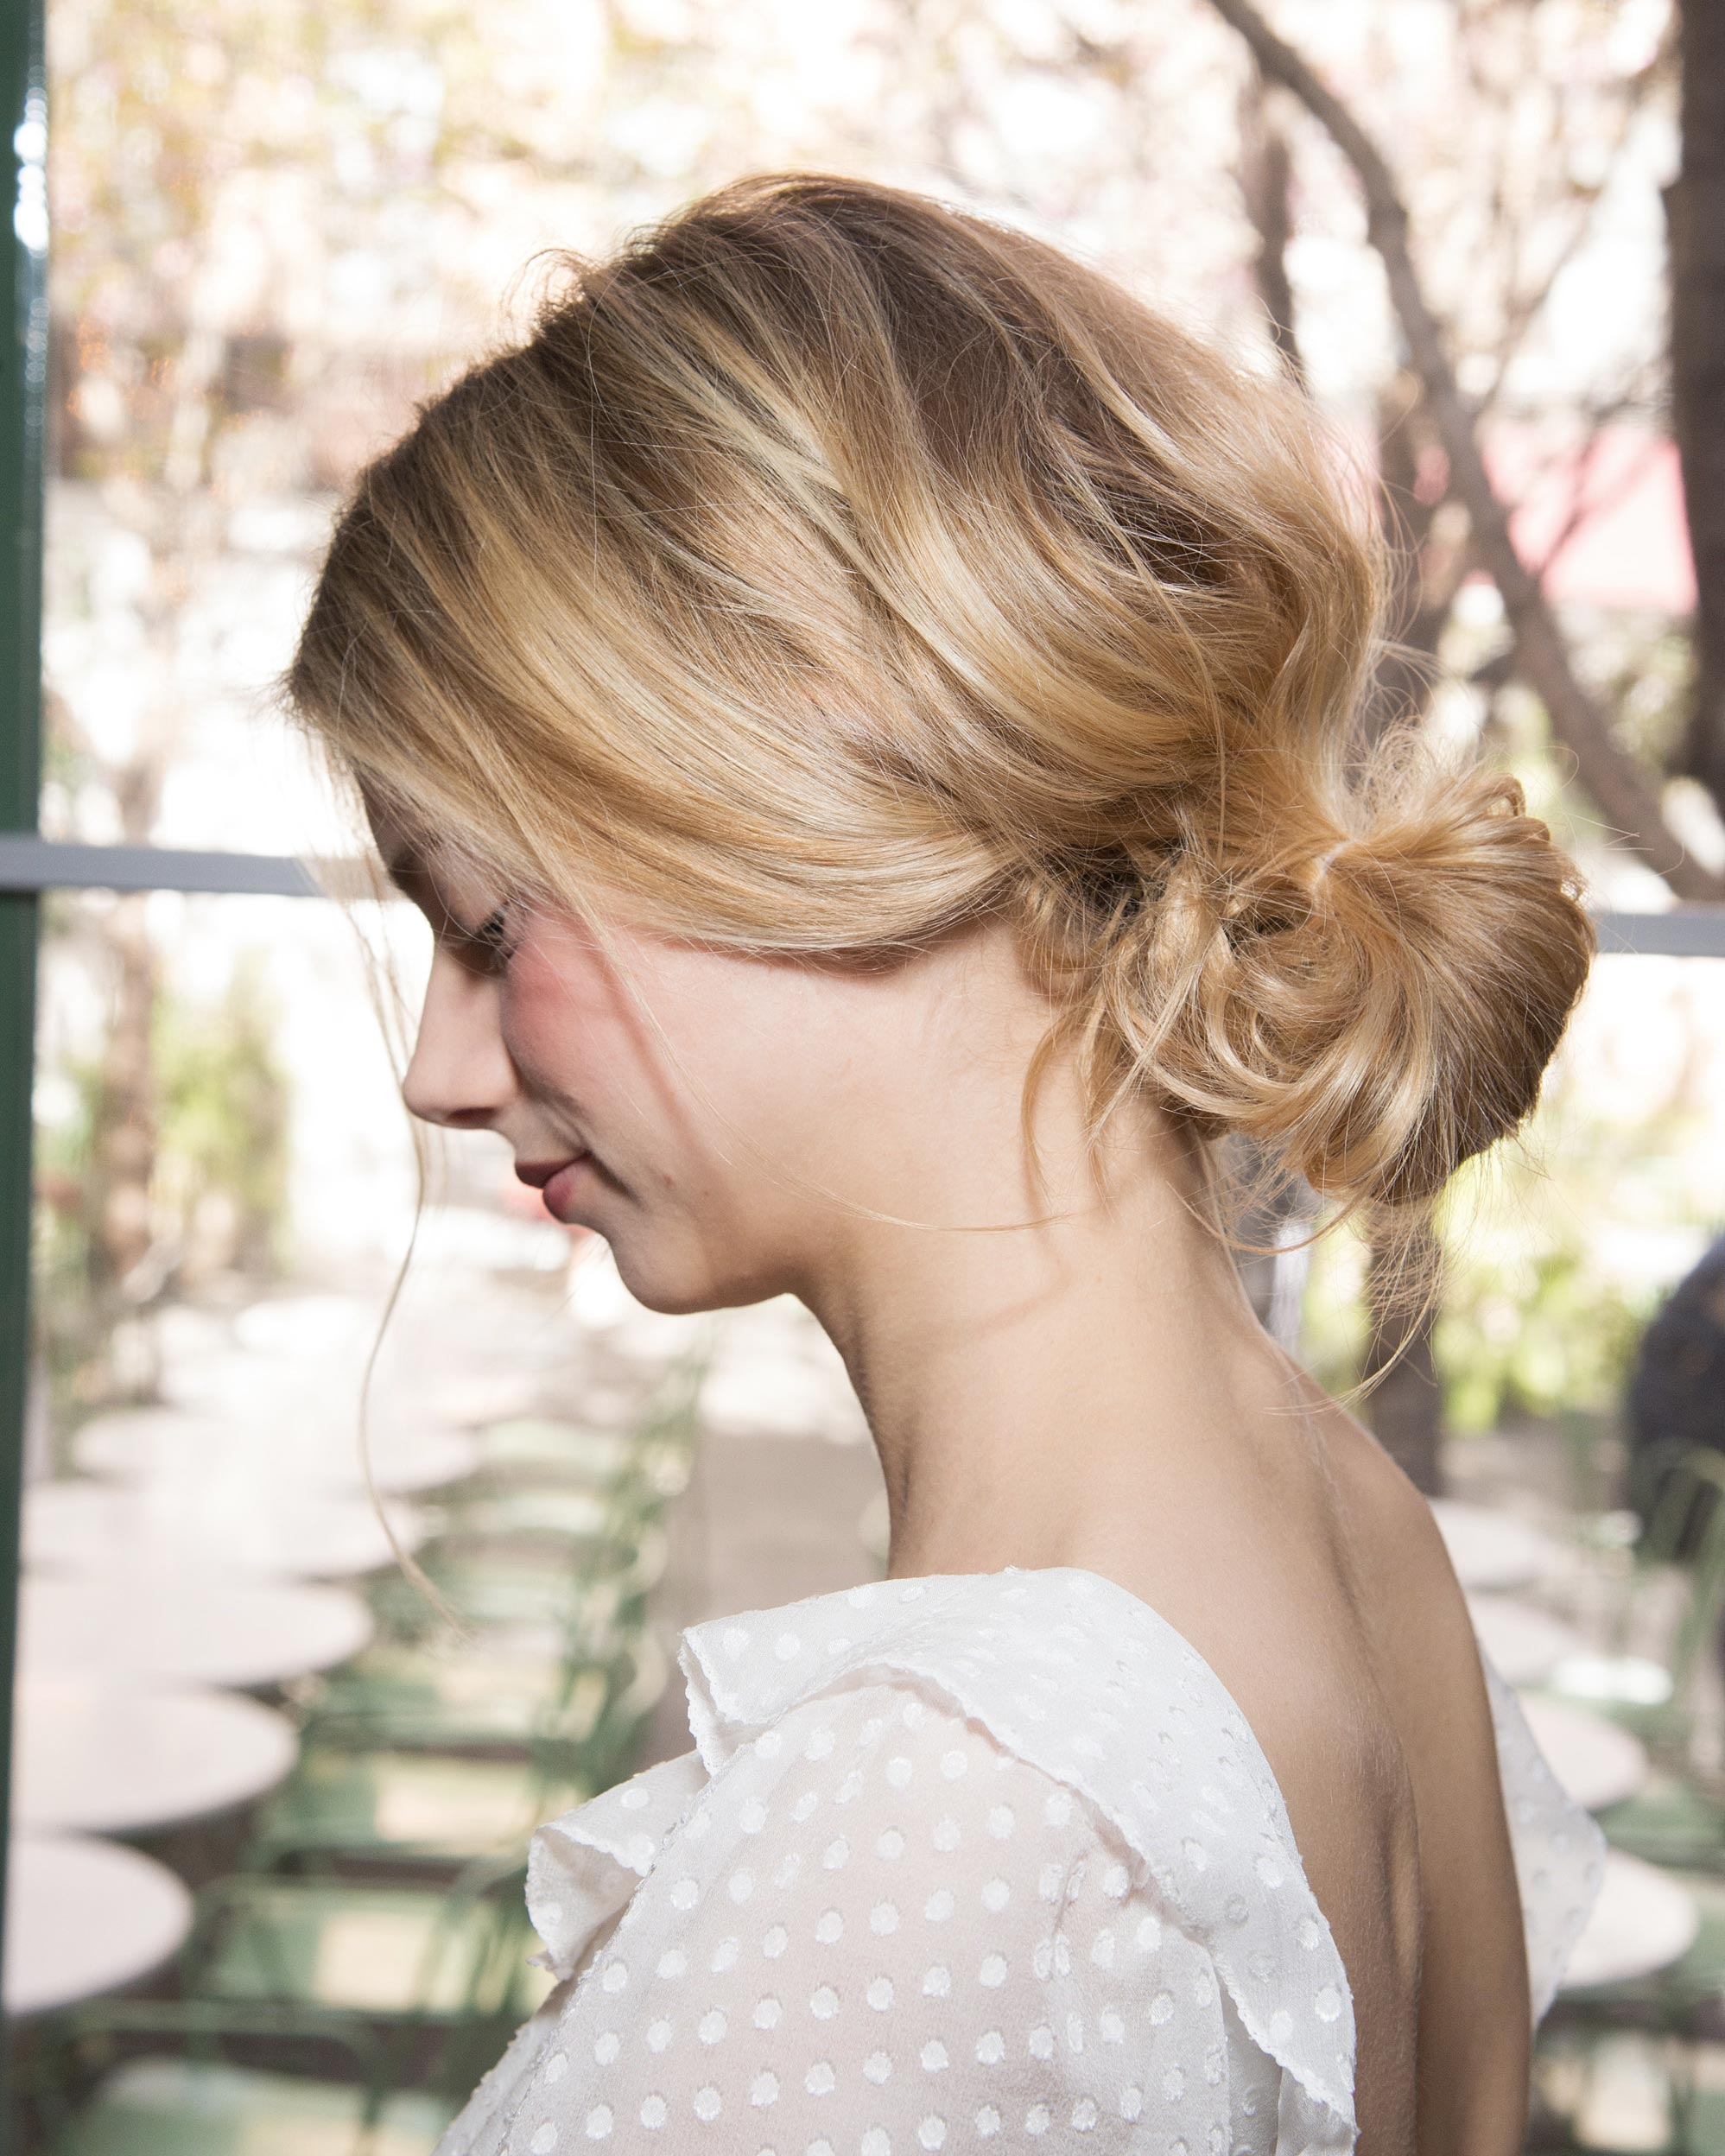 bridal-fashion-hairstyles-delphine-manivet-spring-2017-side-0416.jpg